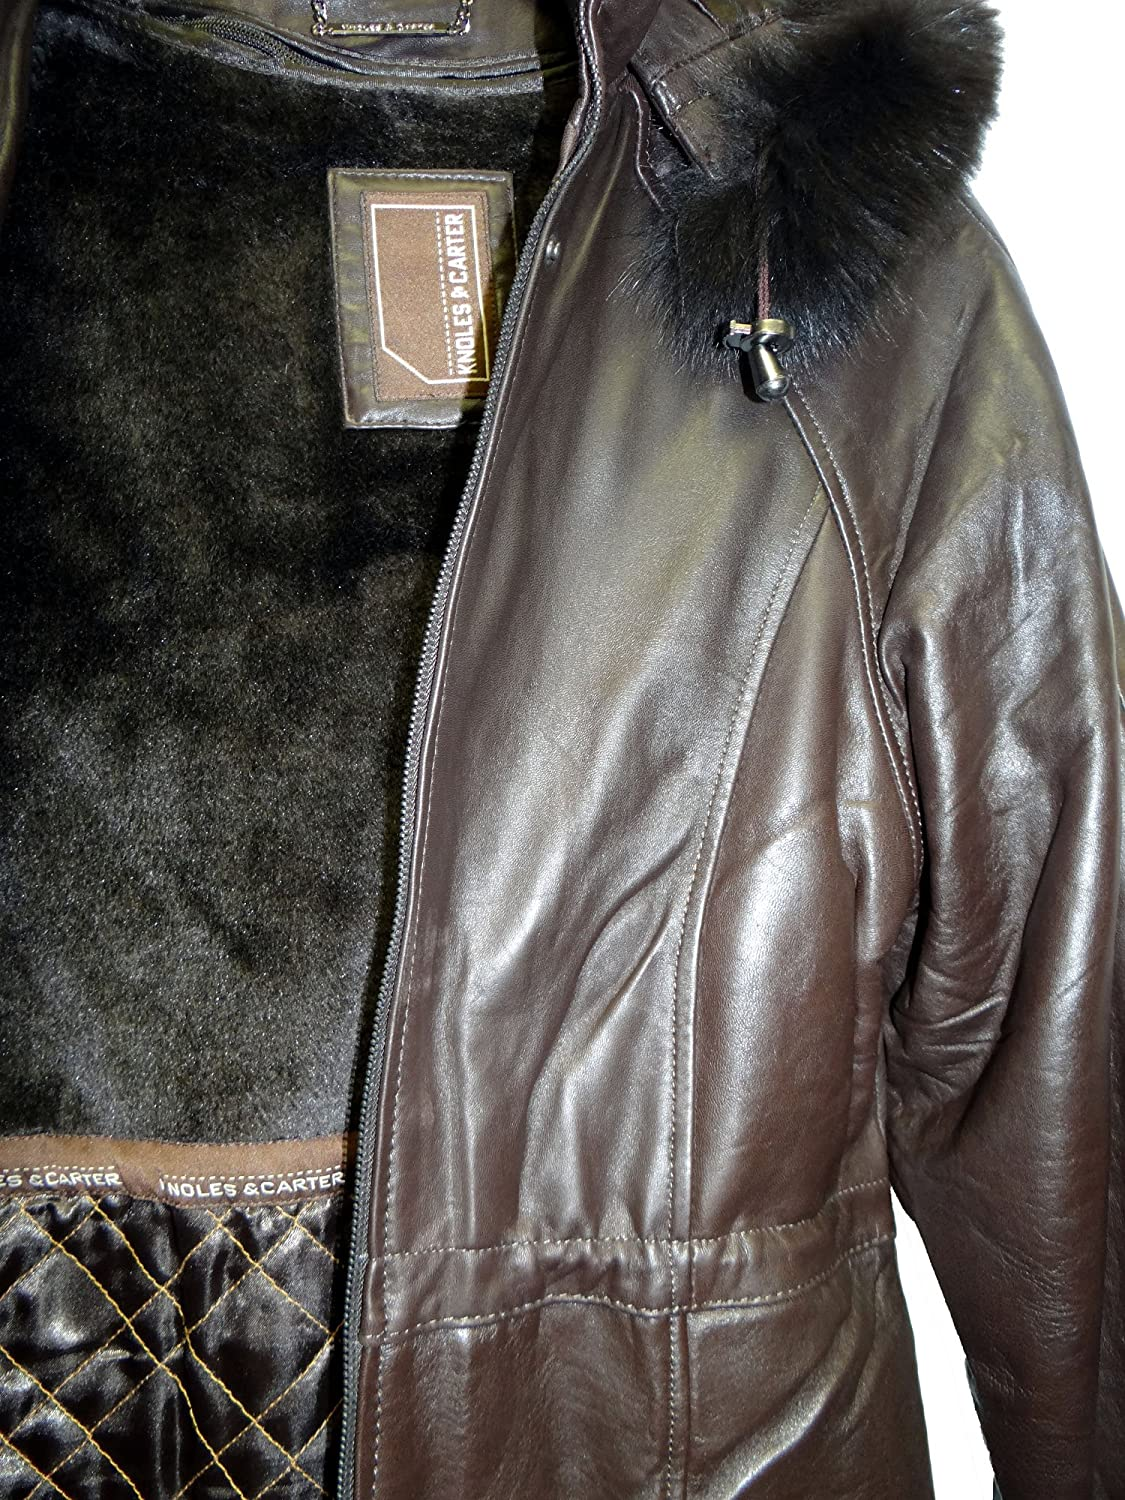 a1a9778a4 Knoles & Carter Women's Fox Fur Hooded Leather Jacket